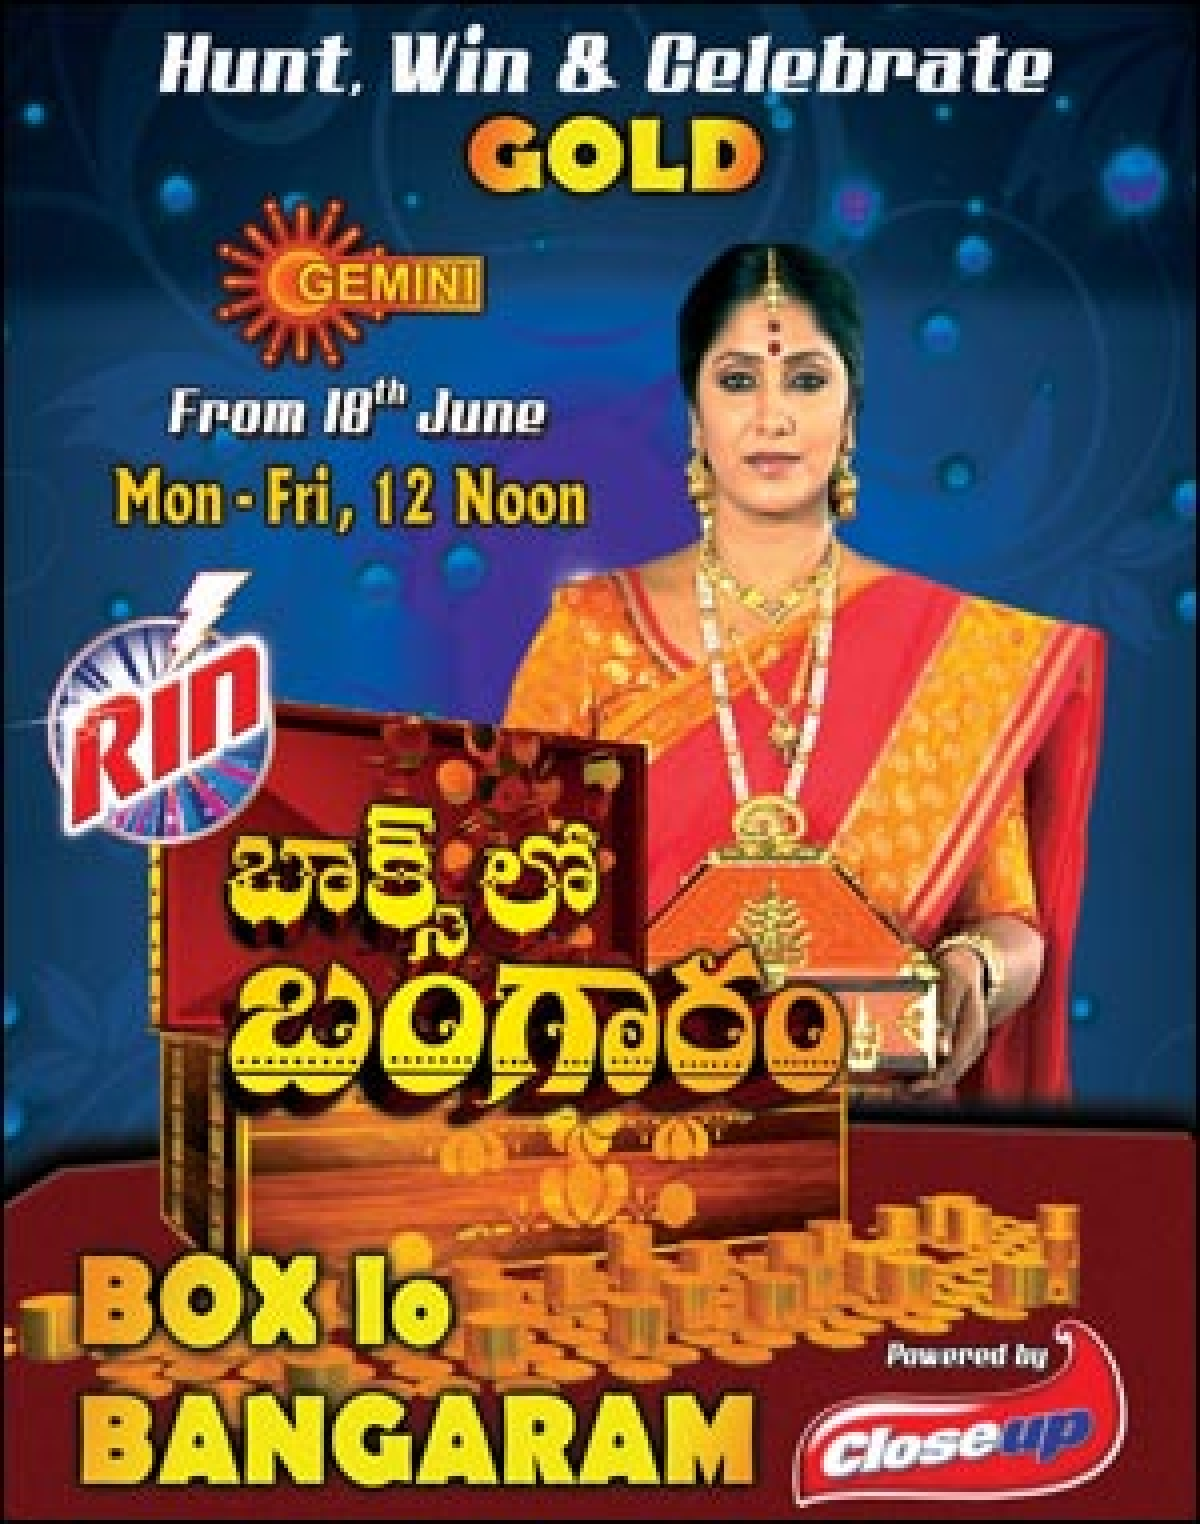 'Boxlo Bangaram' helps Gemini TV increase gap with competition during the afternoons